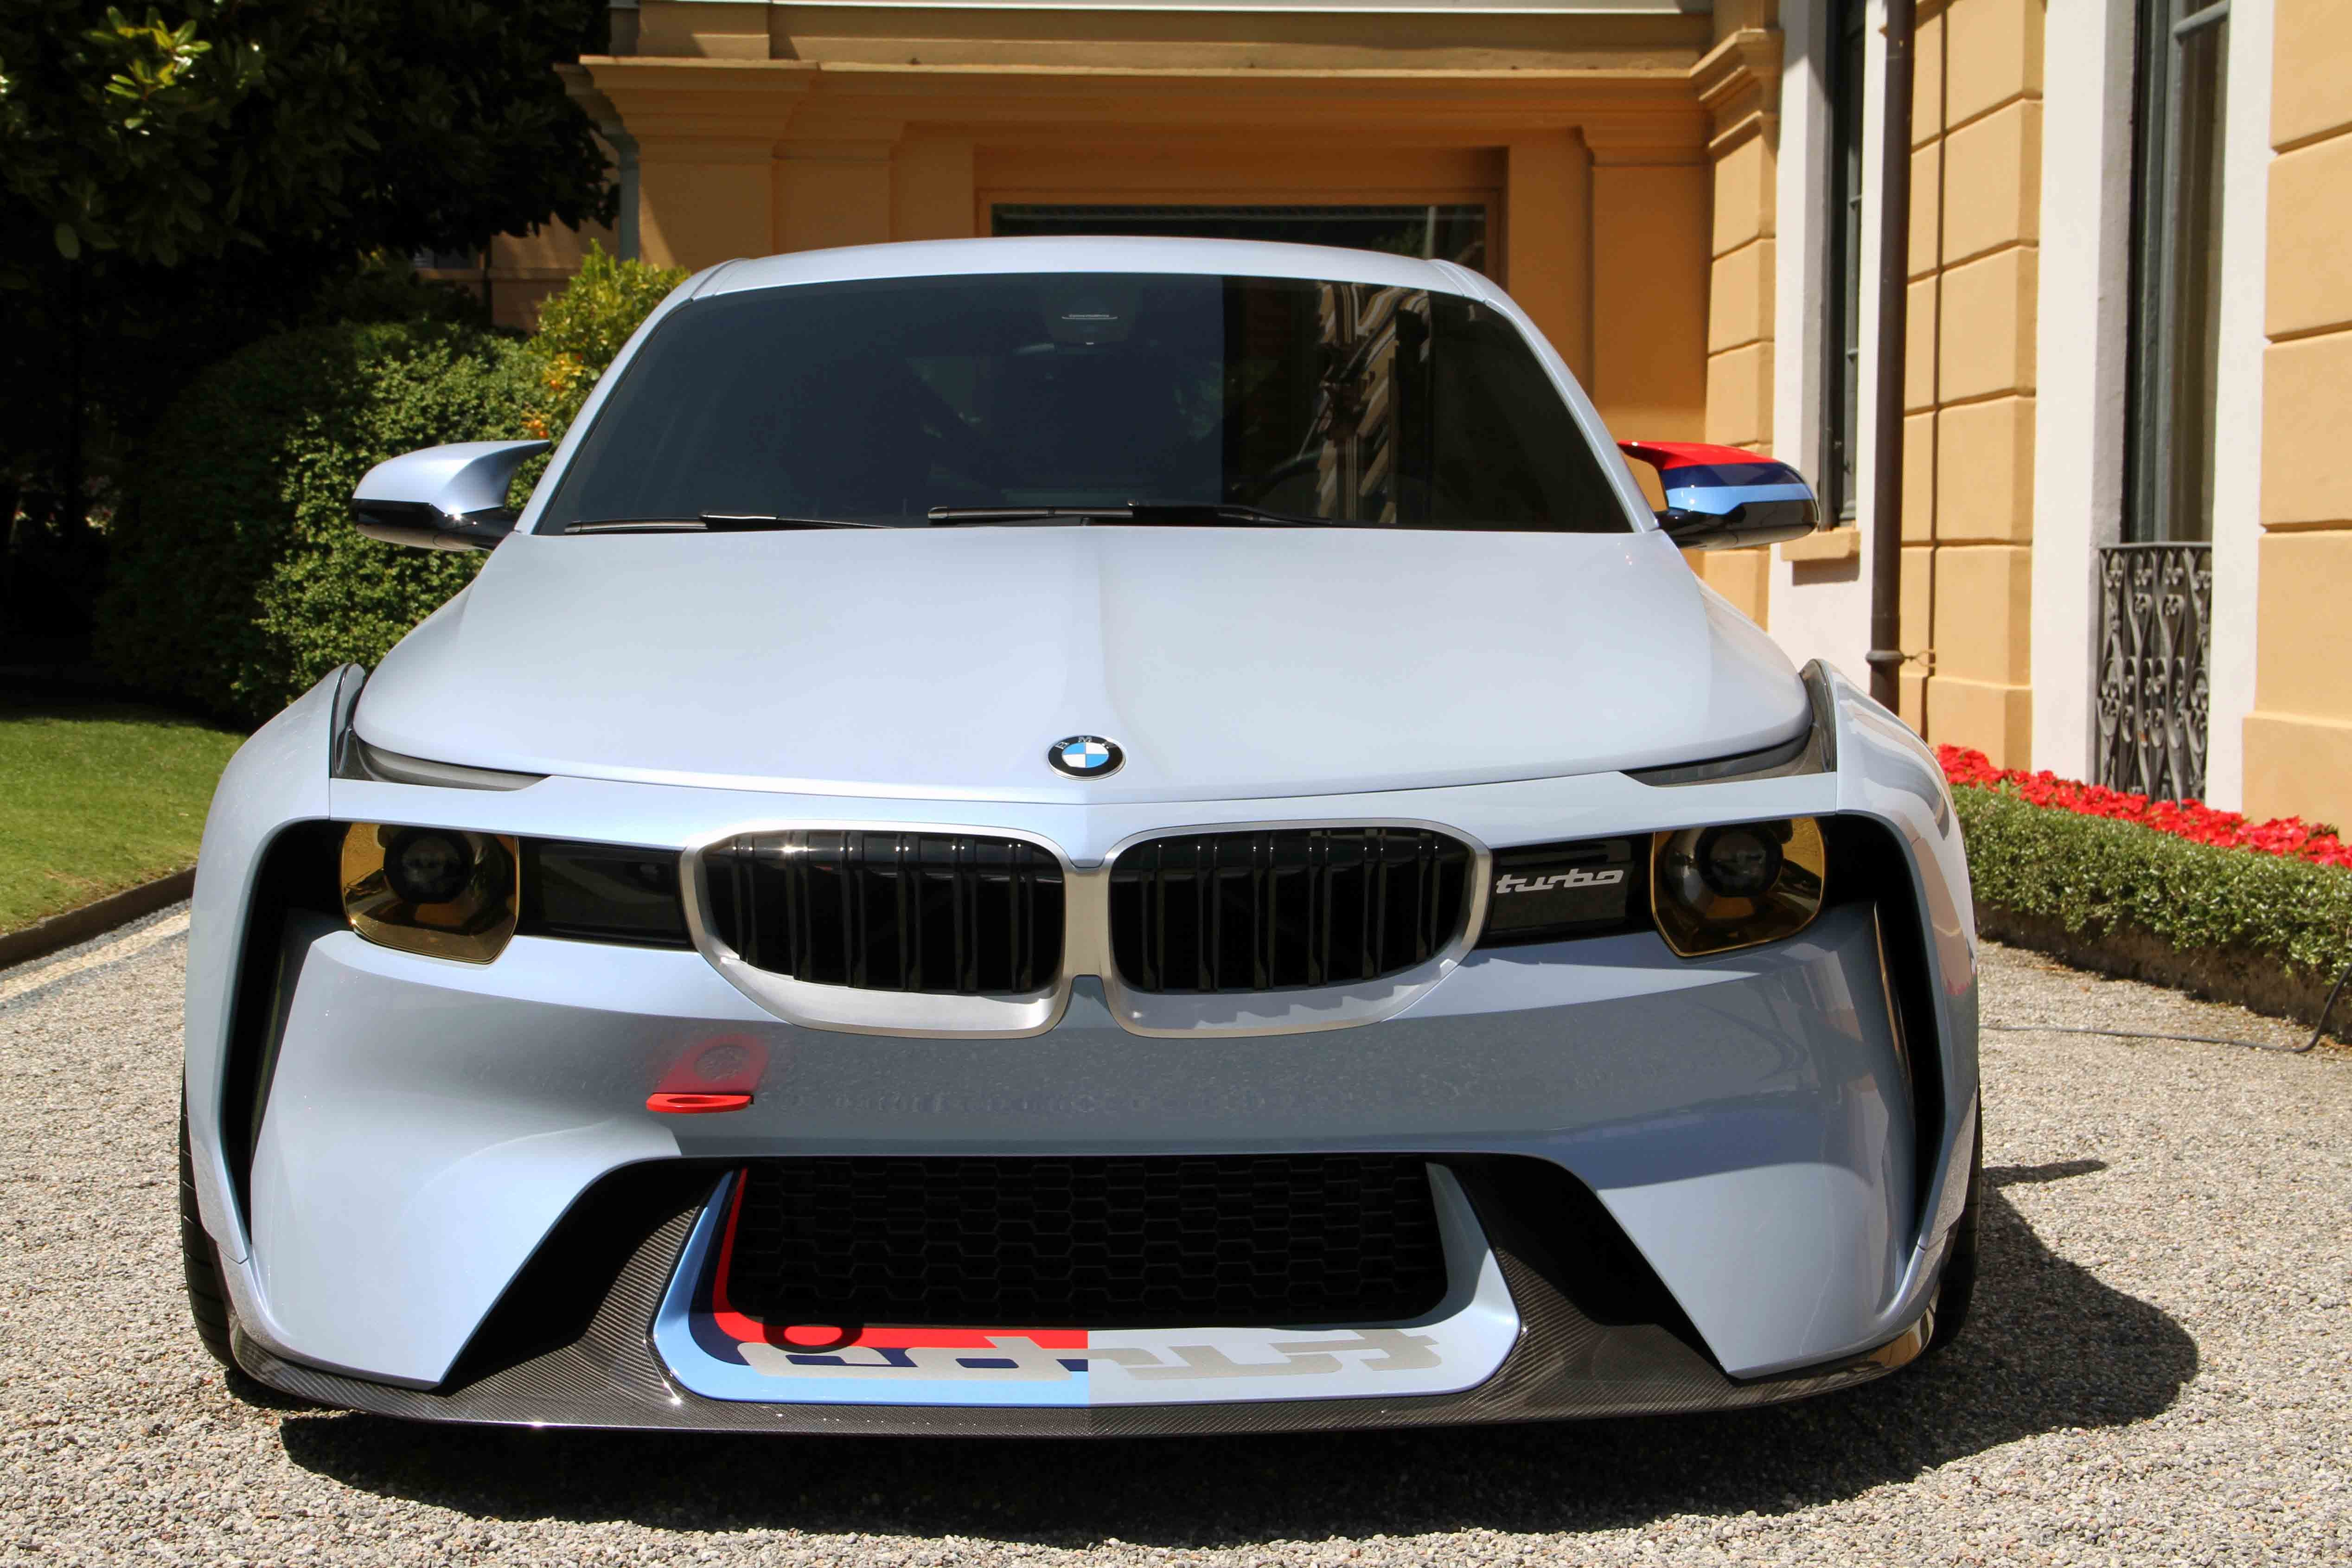 BMW 2002 Hommage Concept. Photo Report: Watch And Car Spotting At The 2016 Concorso d'Eleganza Villa d'Este With A. Lange & Söhne Photo Report: Watch And Car Spotting At The 2016 Concorso d'Eleganza Villa d'Este With A. Lange & Söhne BMW